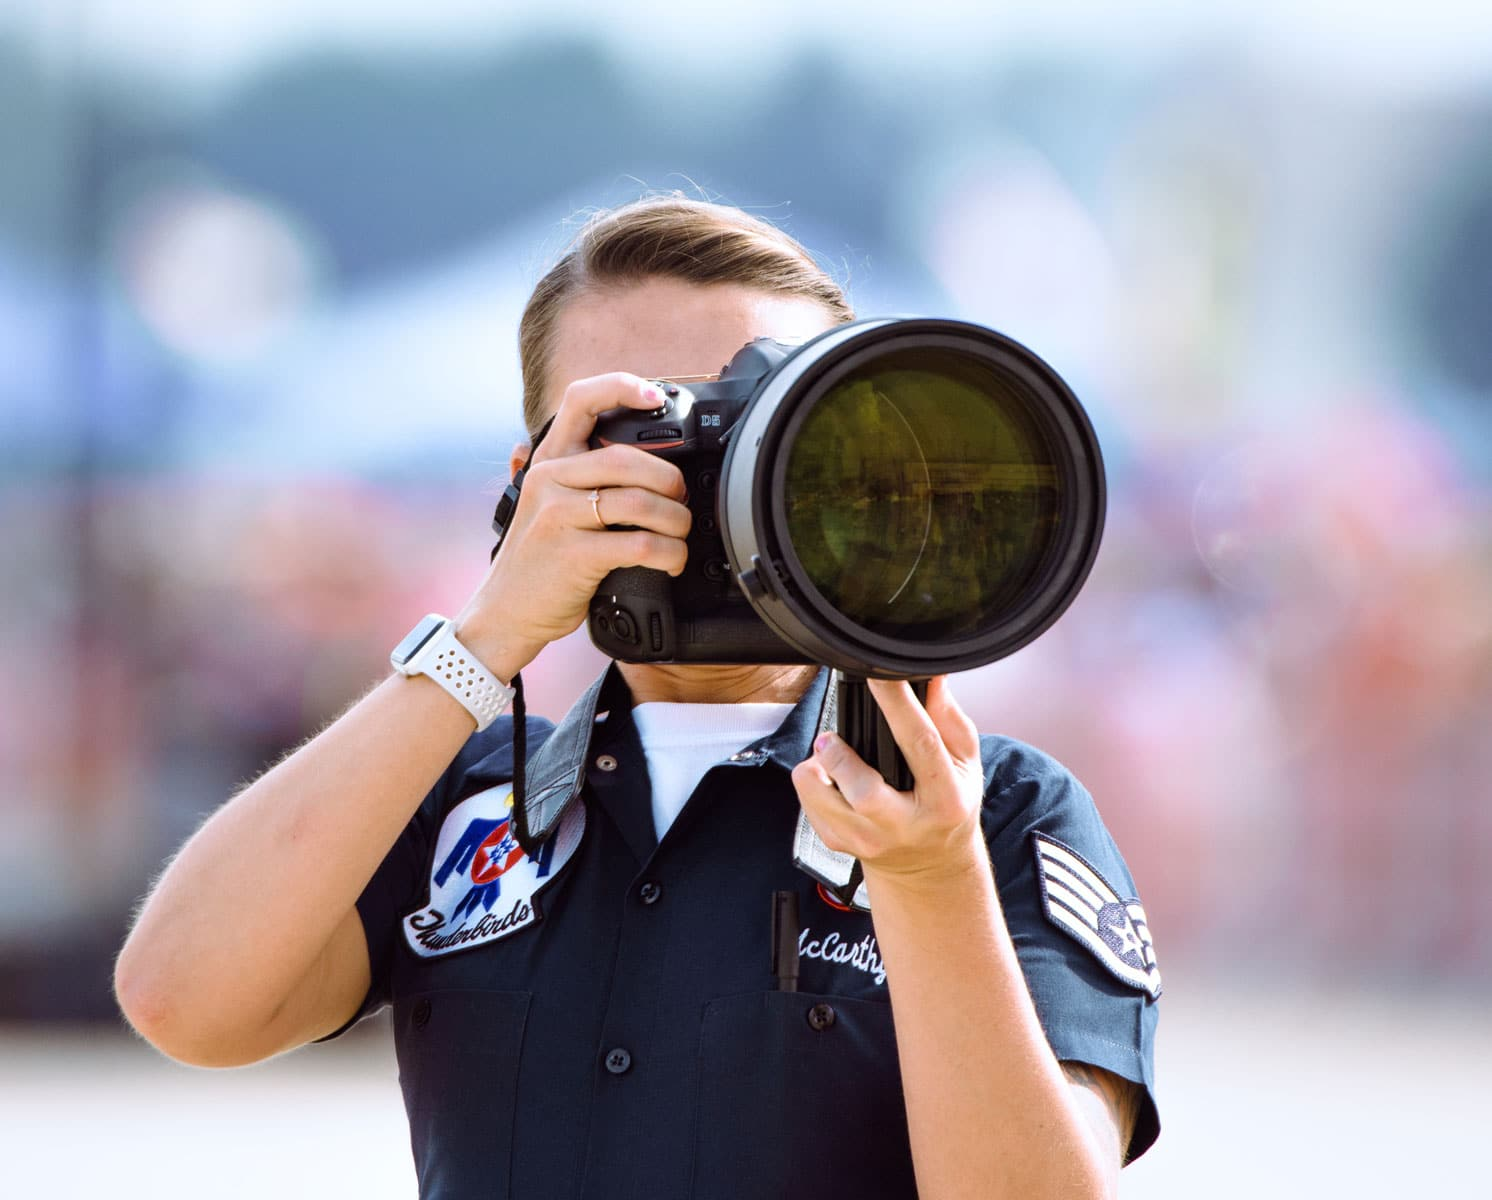 U.S. Air Force Staff Sgt. Tabatha McCarthy, U.S. Air Force Thunderbirds photojournalist, photographs an aerial demonstration during the 2017 Andrews Air Show: Air and Space Expo.